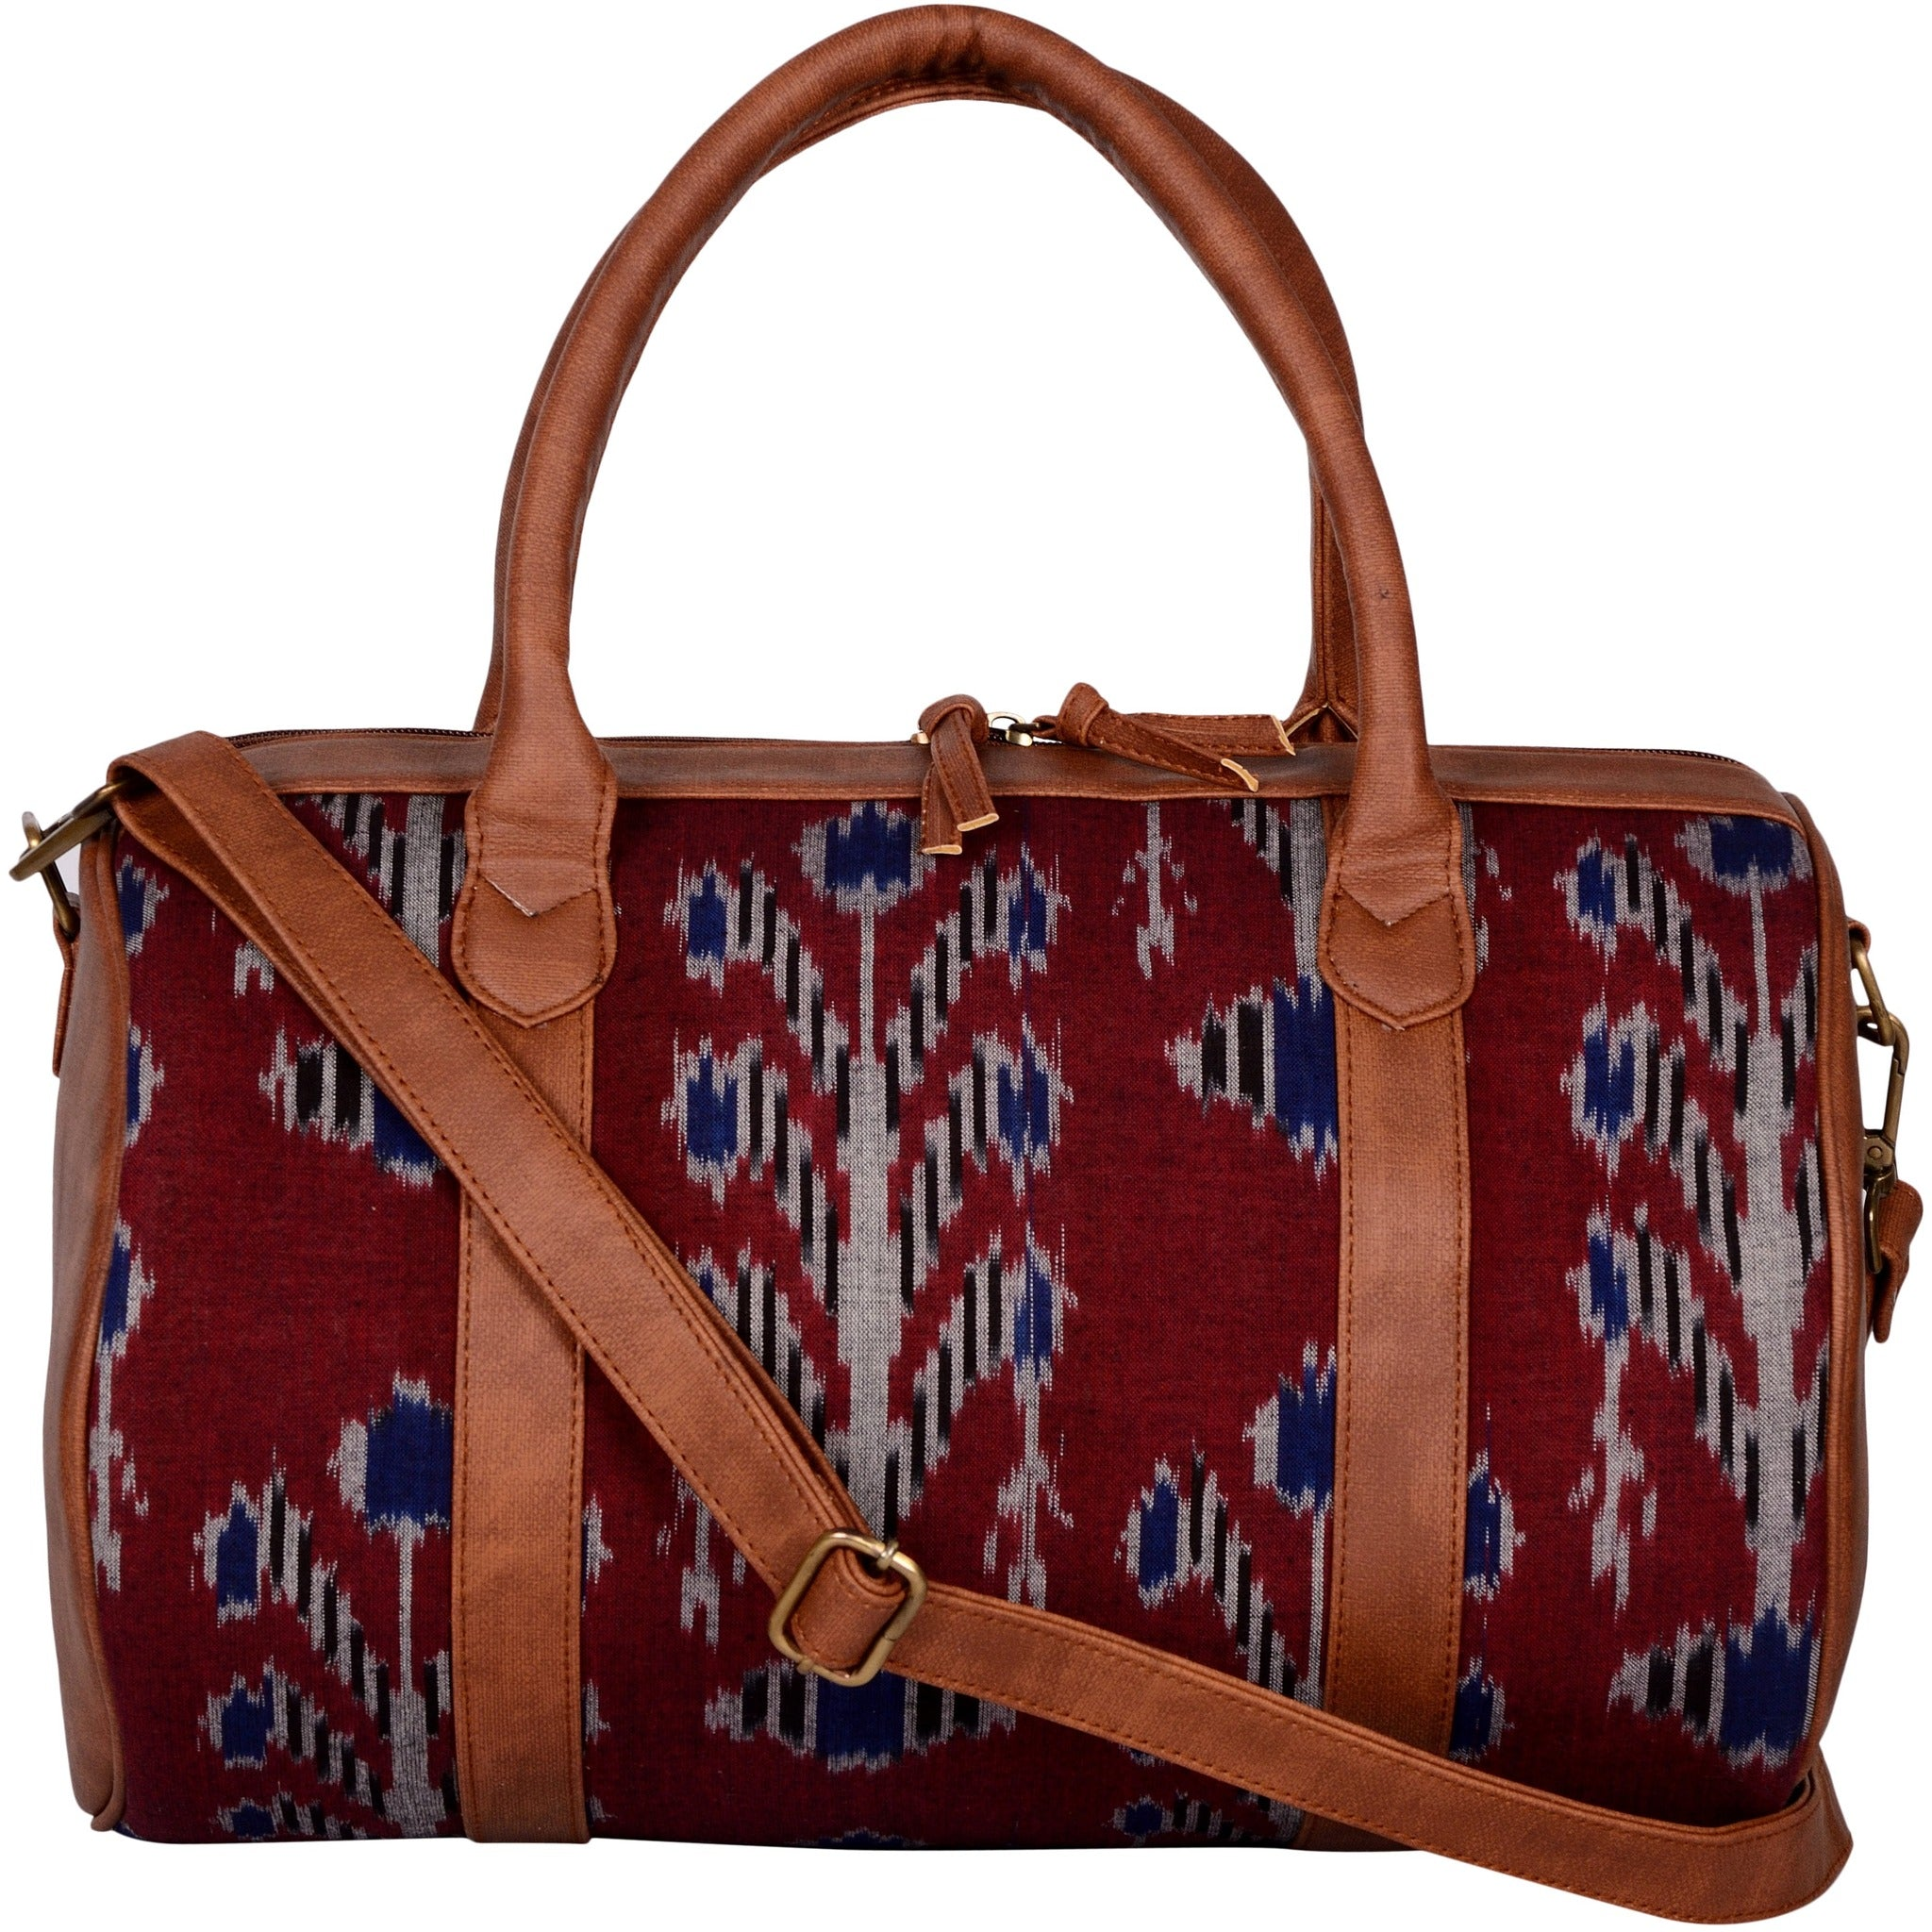 Handwoven Ikat & Vegan Leather Travel Duffle Bag